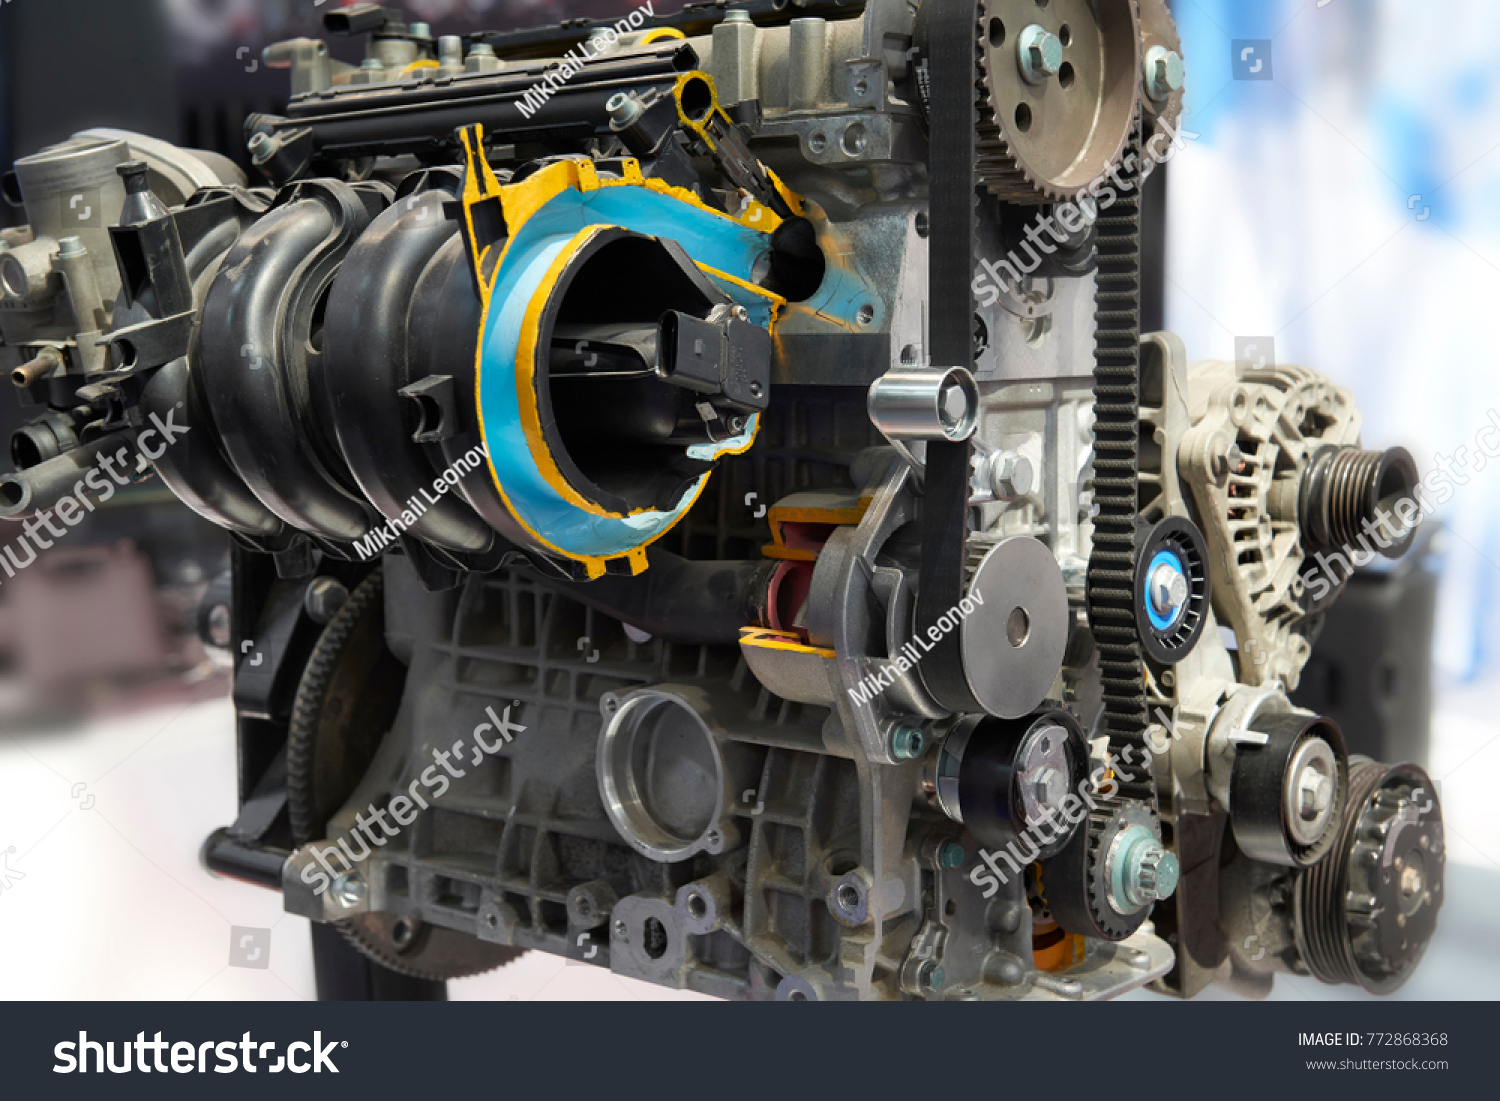 Front View On Clean Car Engine Stock Photo (Edit Now) 772868368 ...